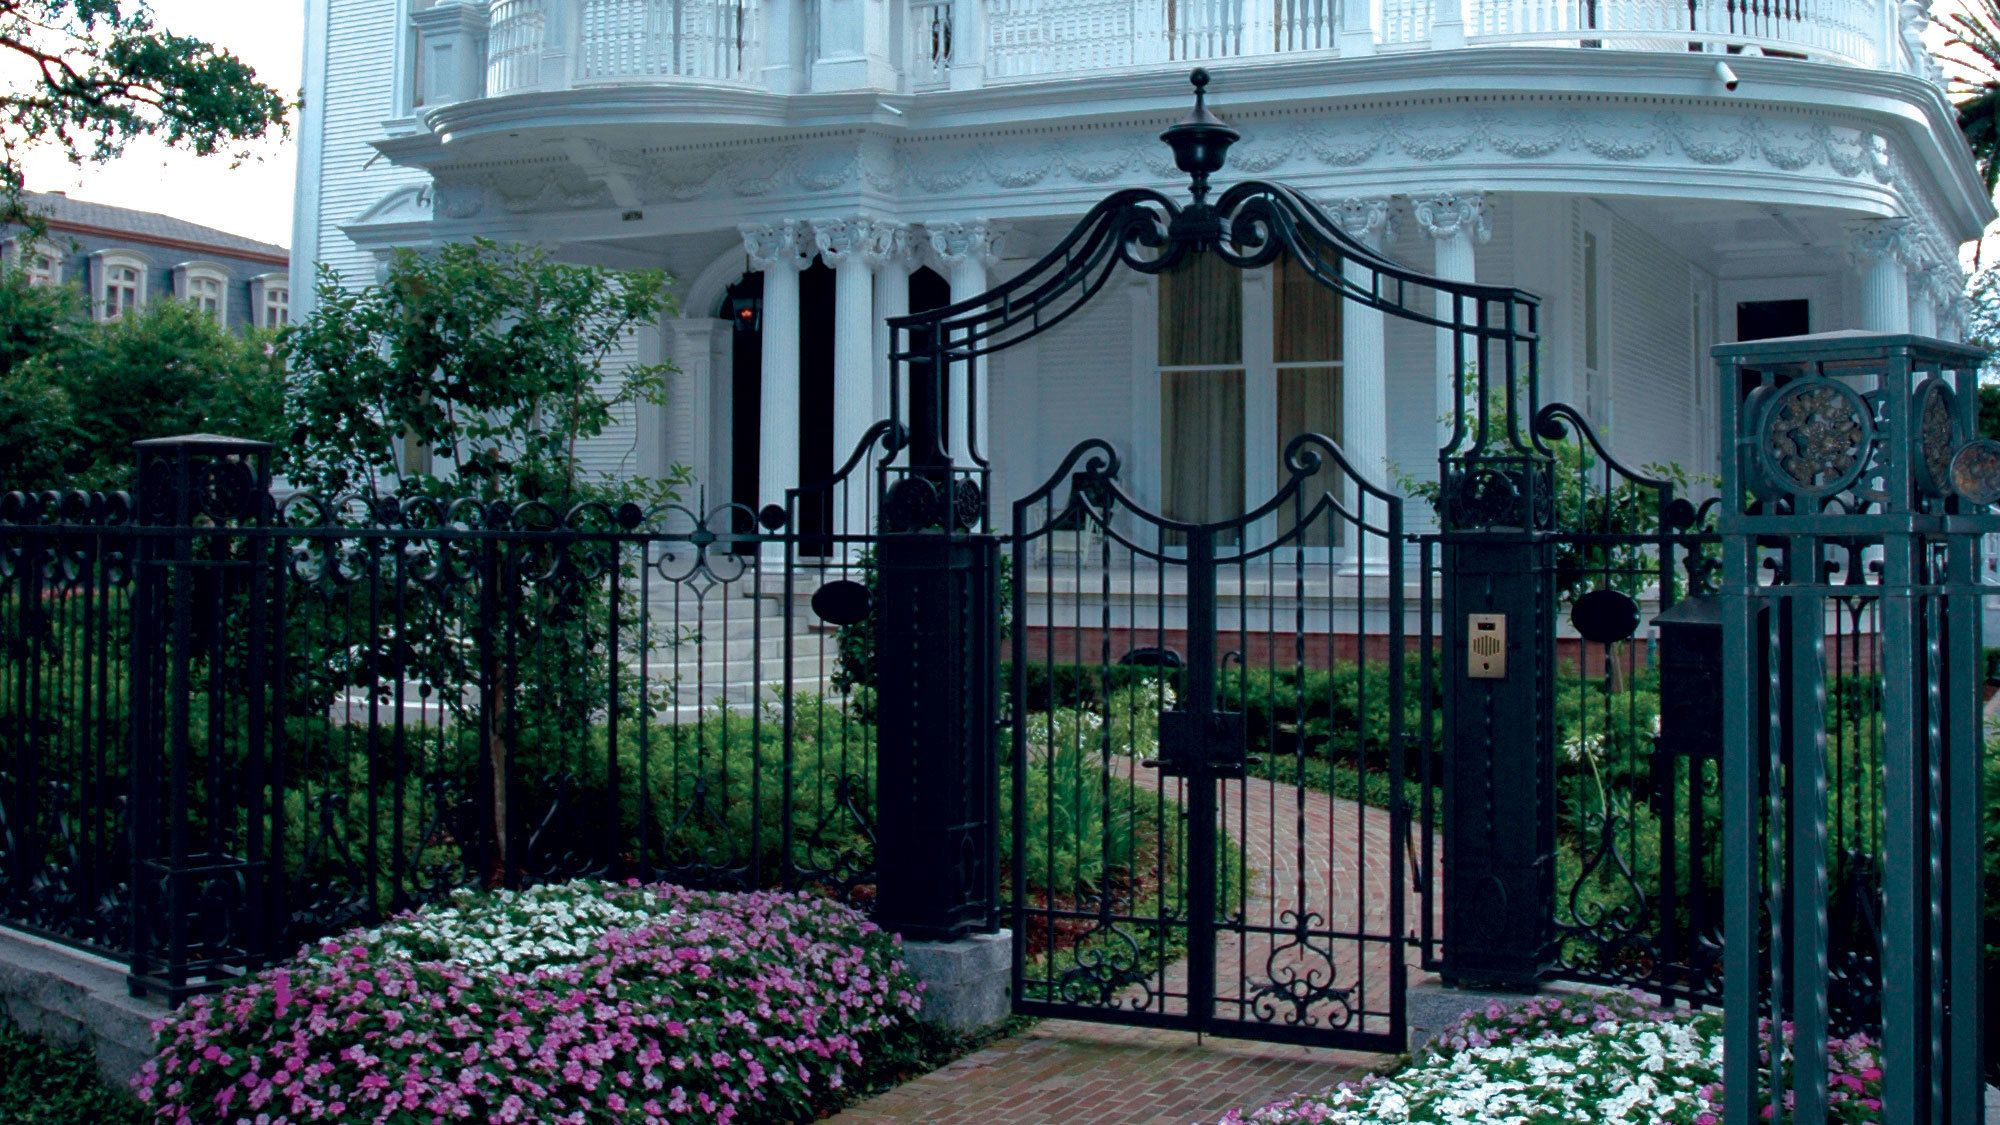 Mansion iron gate on St. Charles Avenue in New Orleans